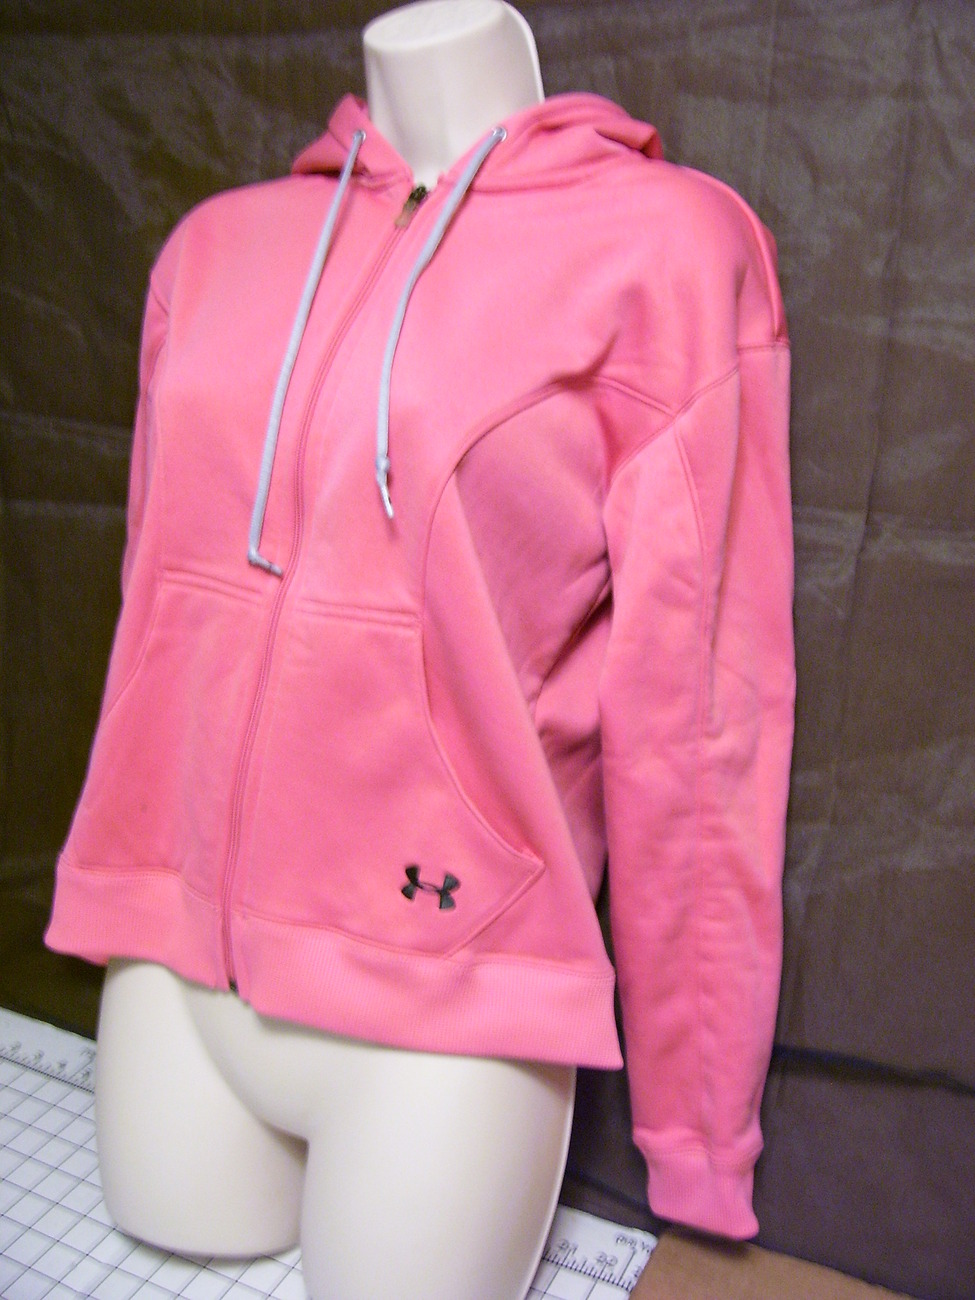 Under Armour Full Zip Hoodie Womens XS Light  Peach Coral Pink  Exc Warm